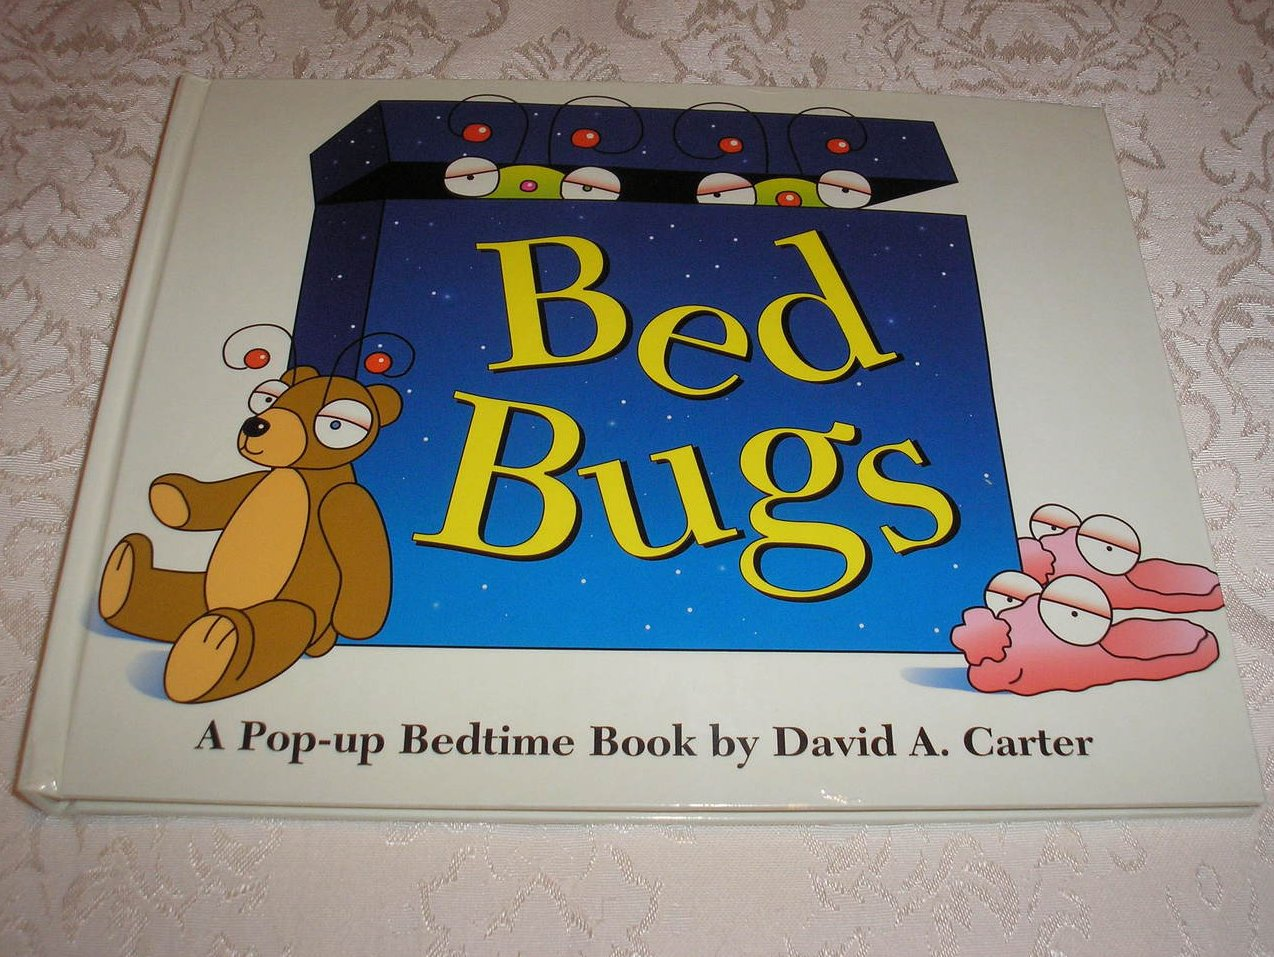 Bed Bugs David A. Carter very good pop-up, original size, 1st ed collectable hc